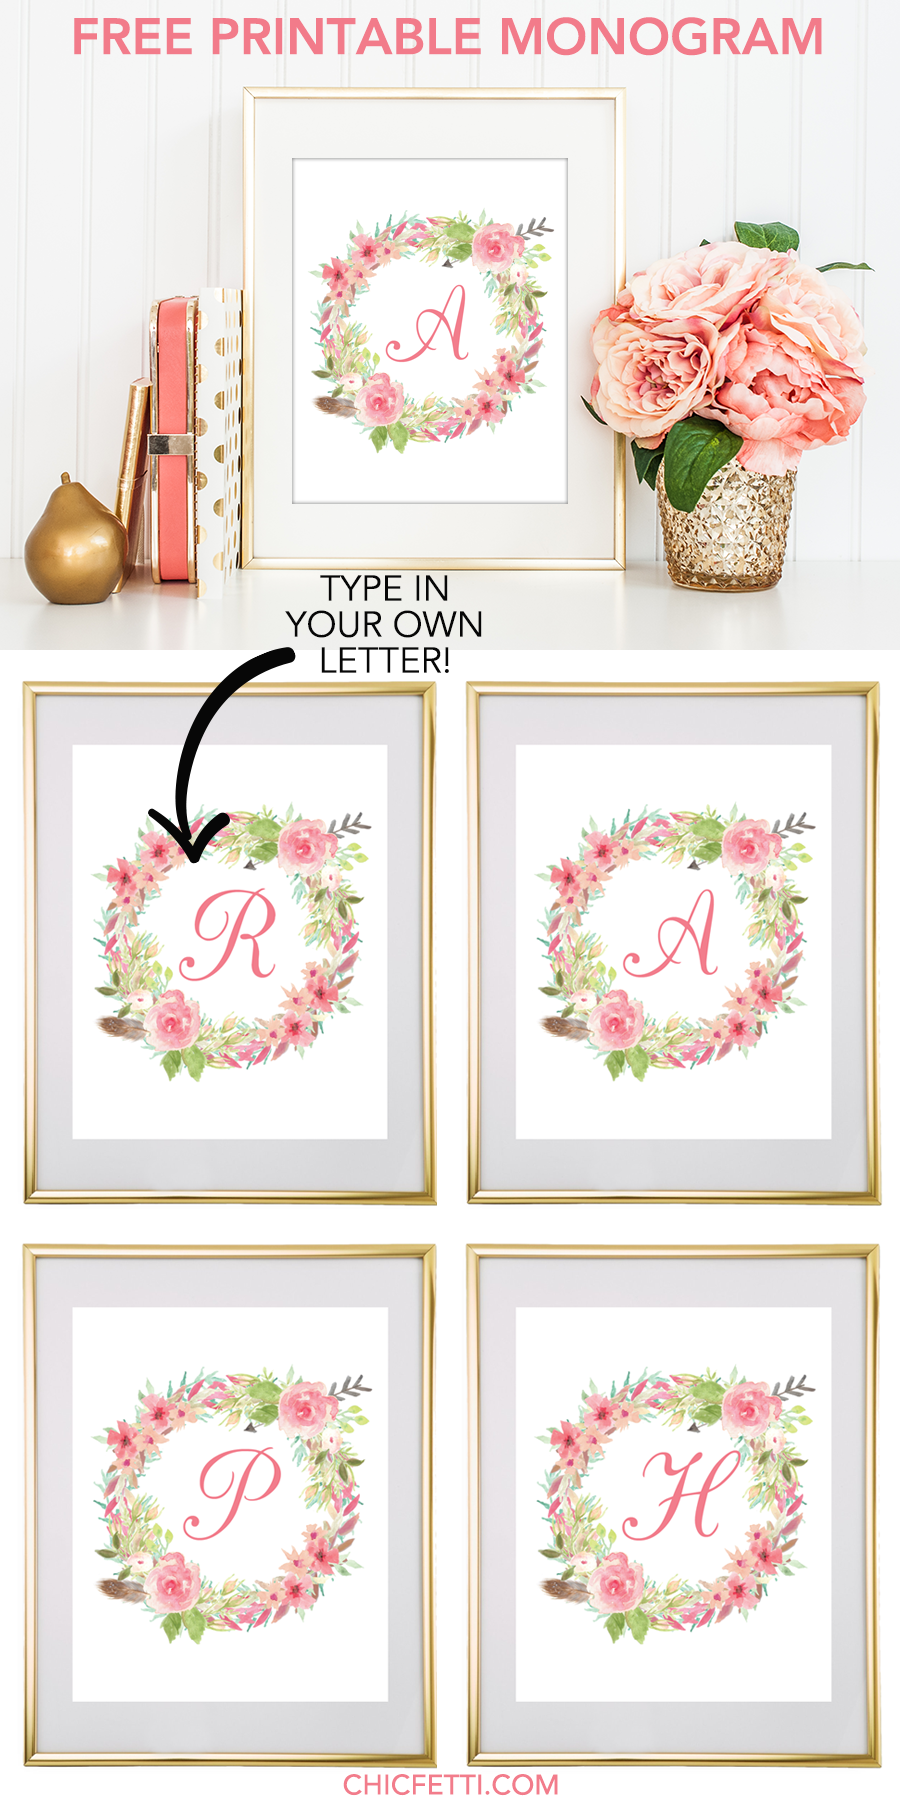 photograph regarding Printable Monogram Maker known as Watercolor Floral Wreath Monogram Company Cost-free Printable